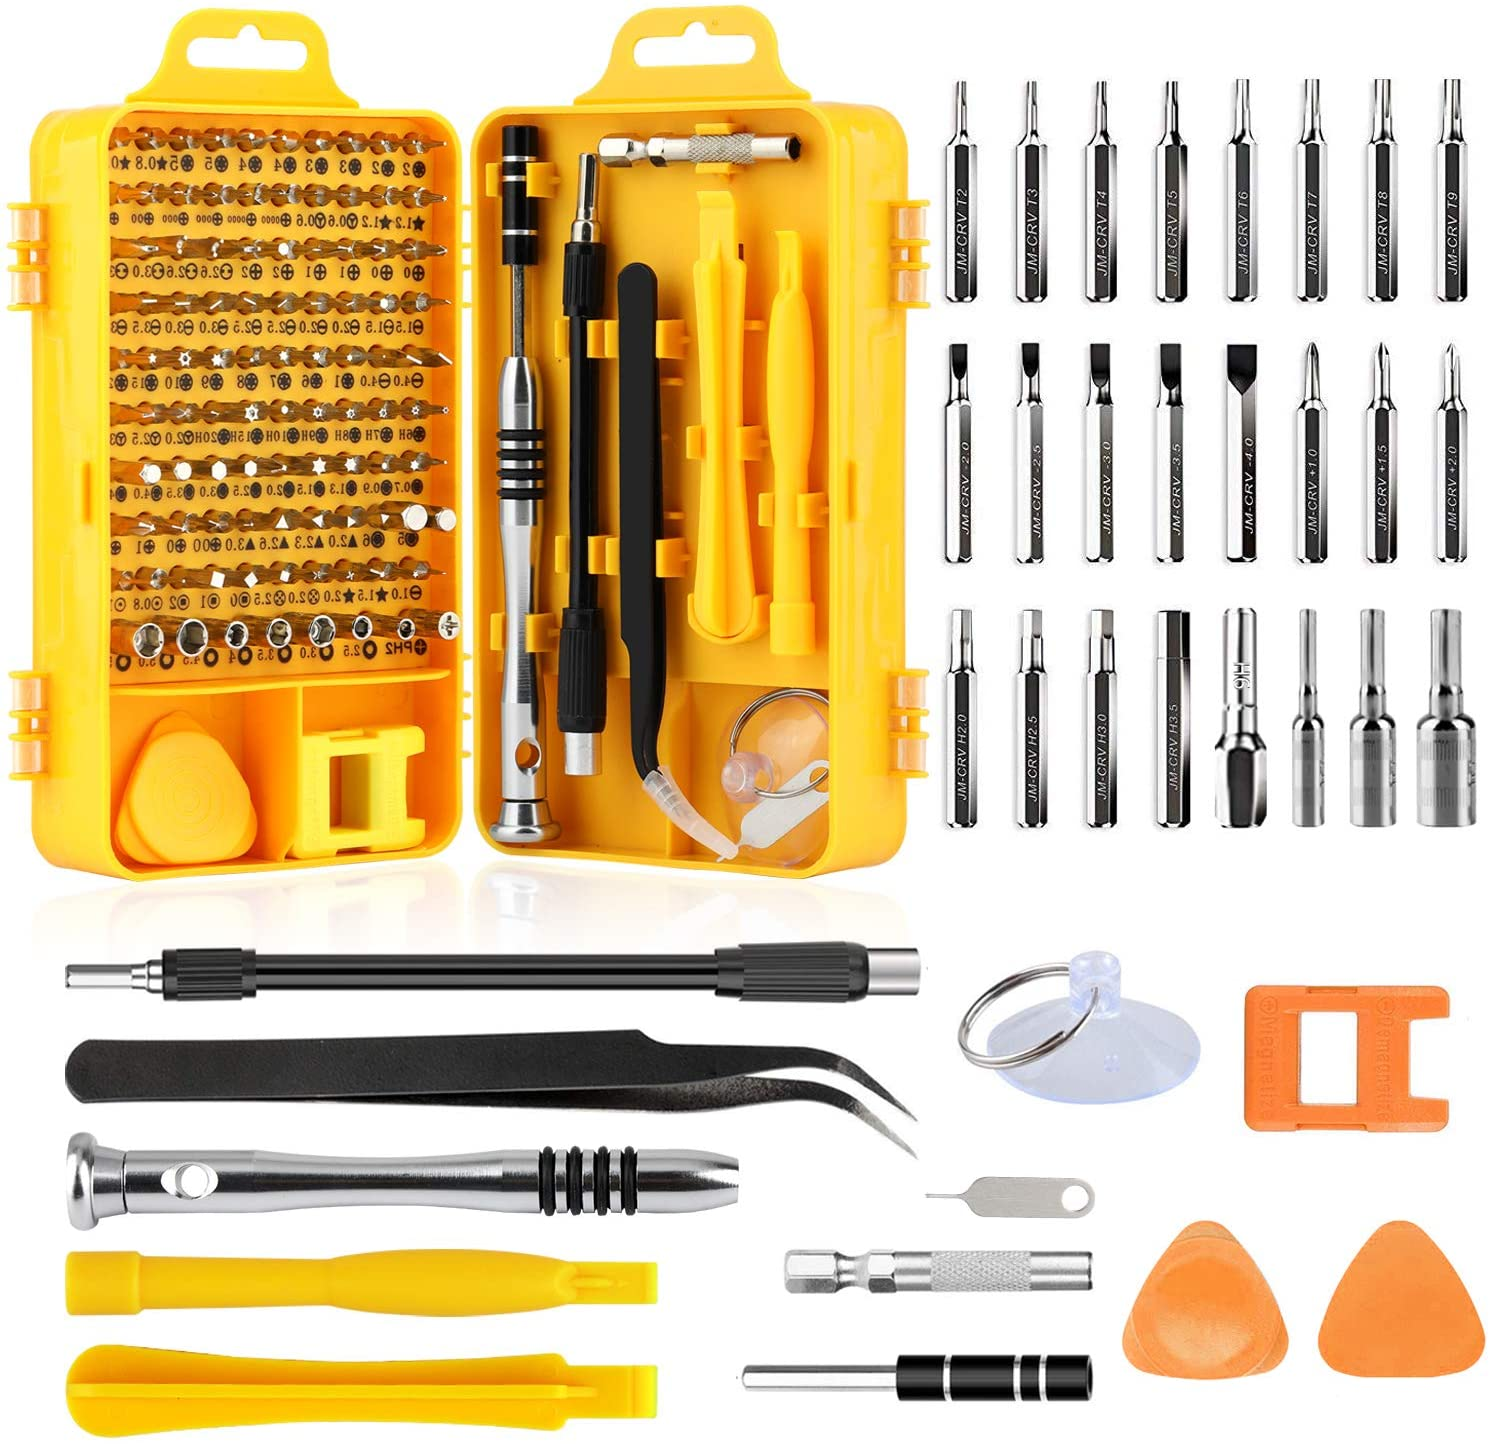 109 in 1 Screwdriver Set Non-Slip Magnetic Precision Electronics Tool Kit for Repair iPhone, Android, Computer, Laptop